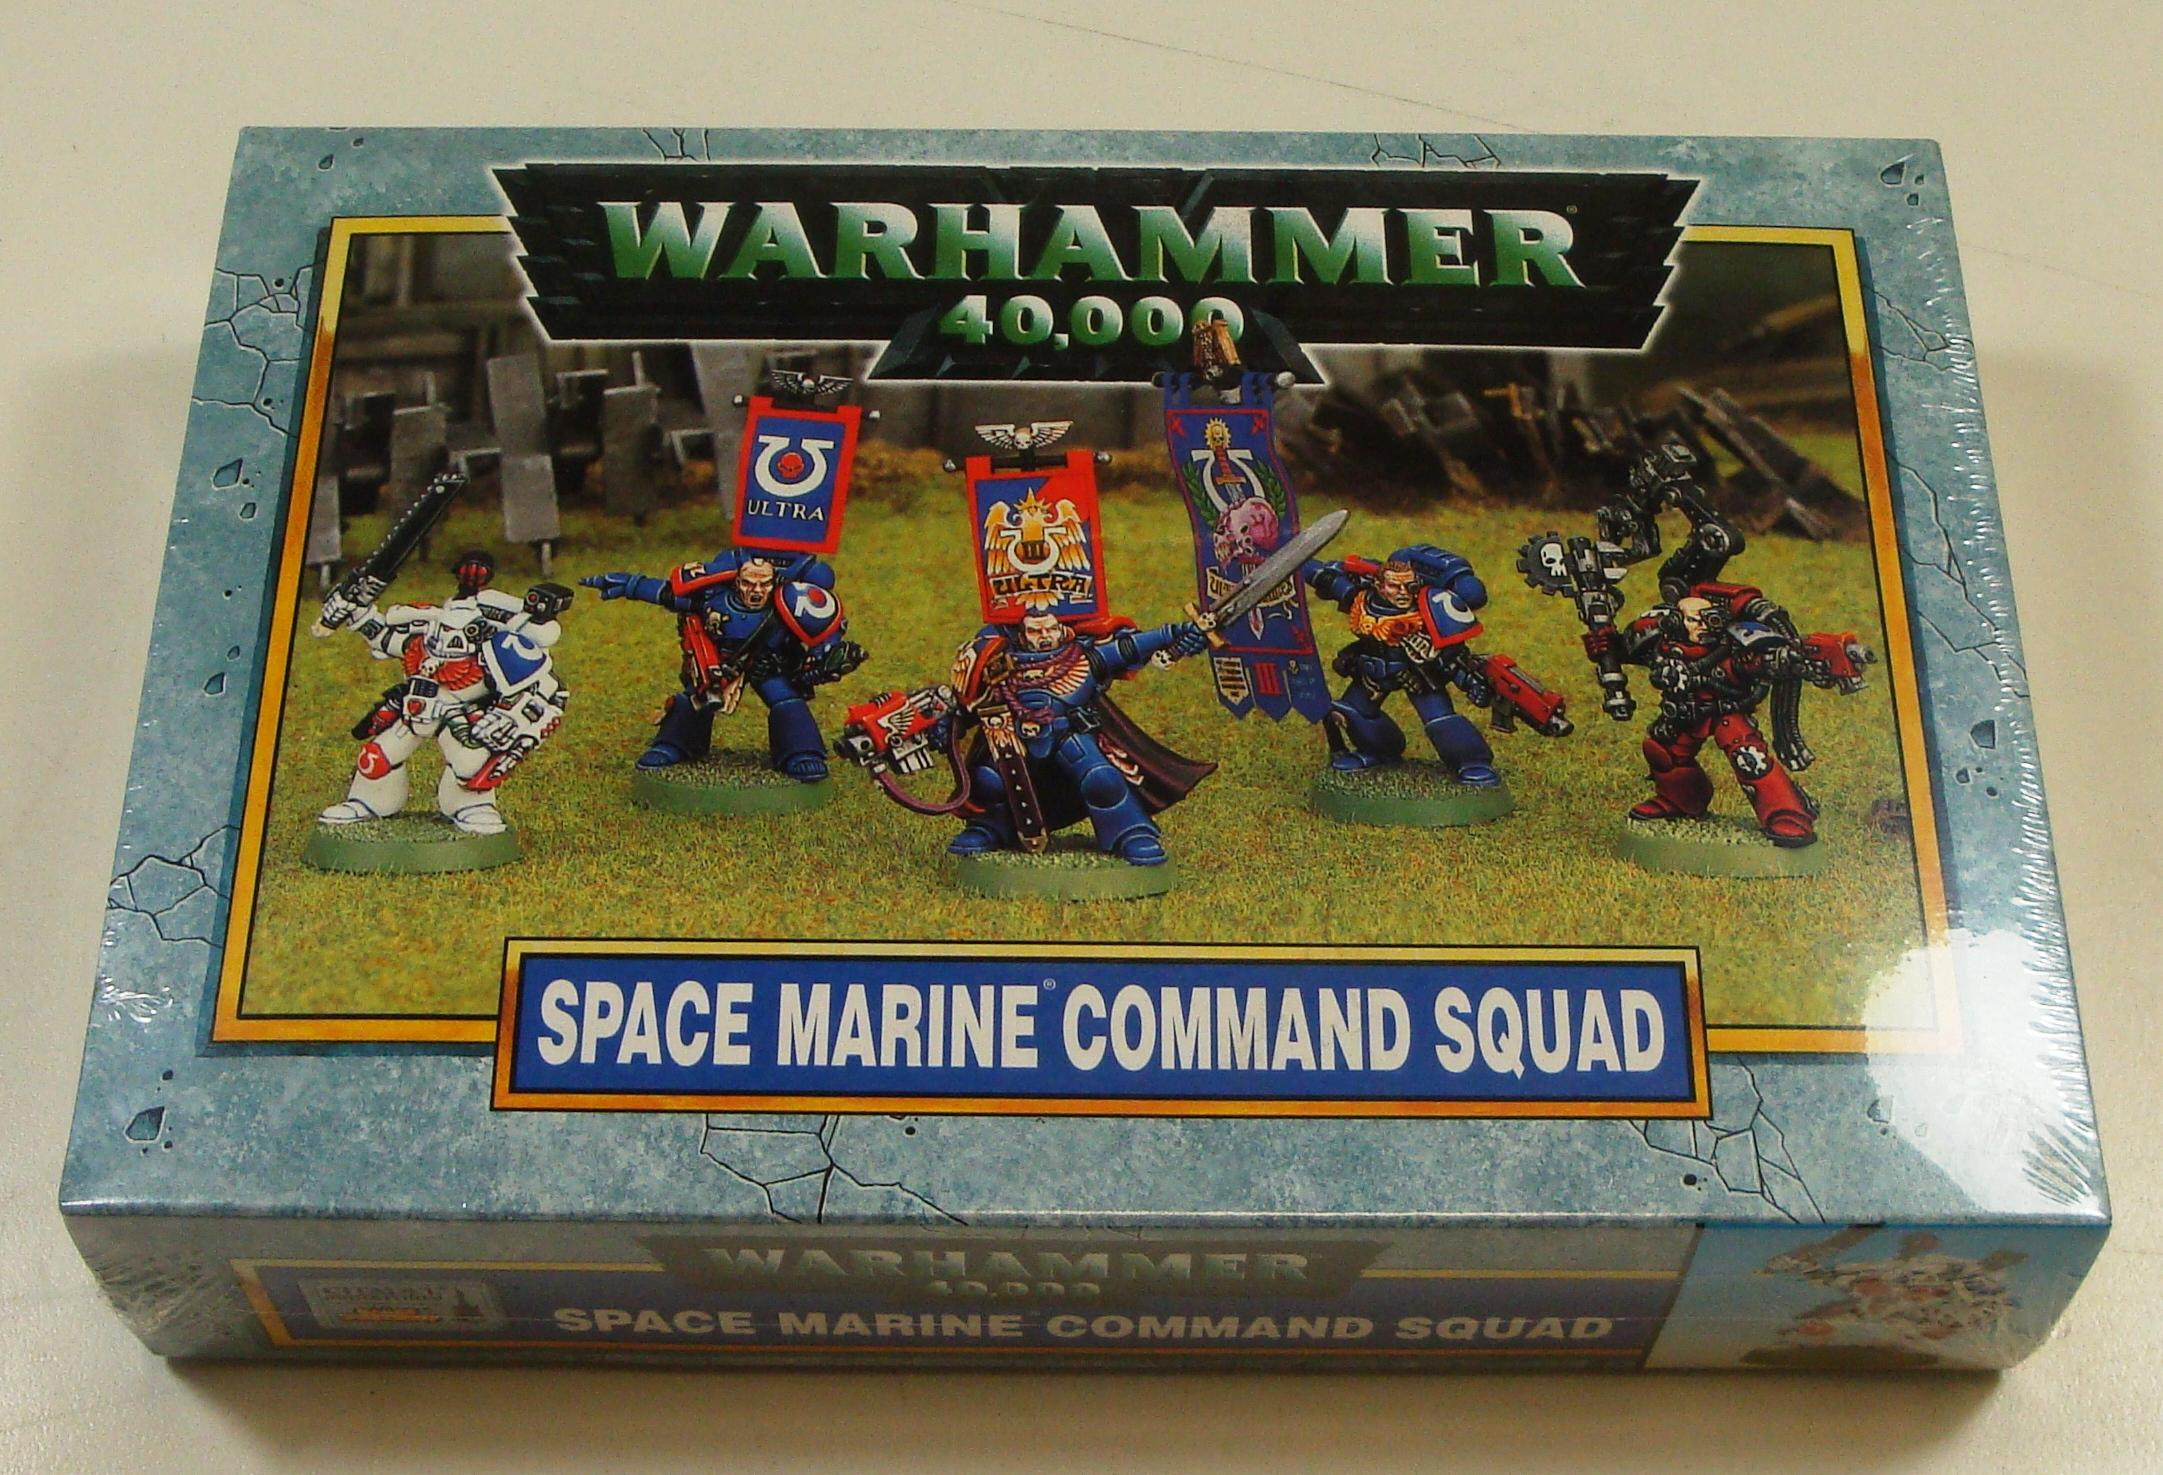 Adeptus Astartes, Astartes, Blood Angels, Dreadnought, Imperial Fists, Predator, Razorback, Rhino, Rogue Trader, Sale, Space Marine Command Squad, Space Marines, Whirlwind